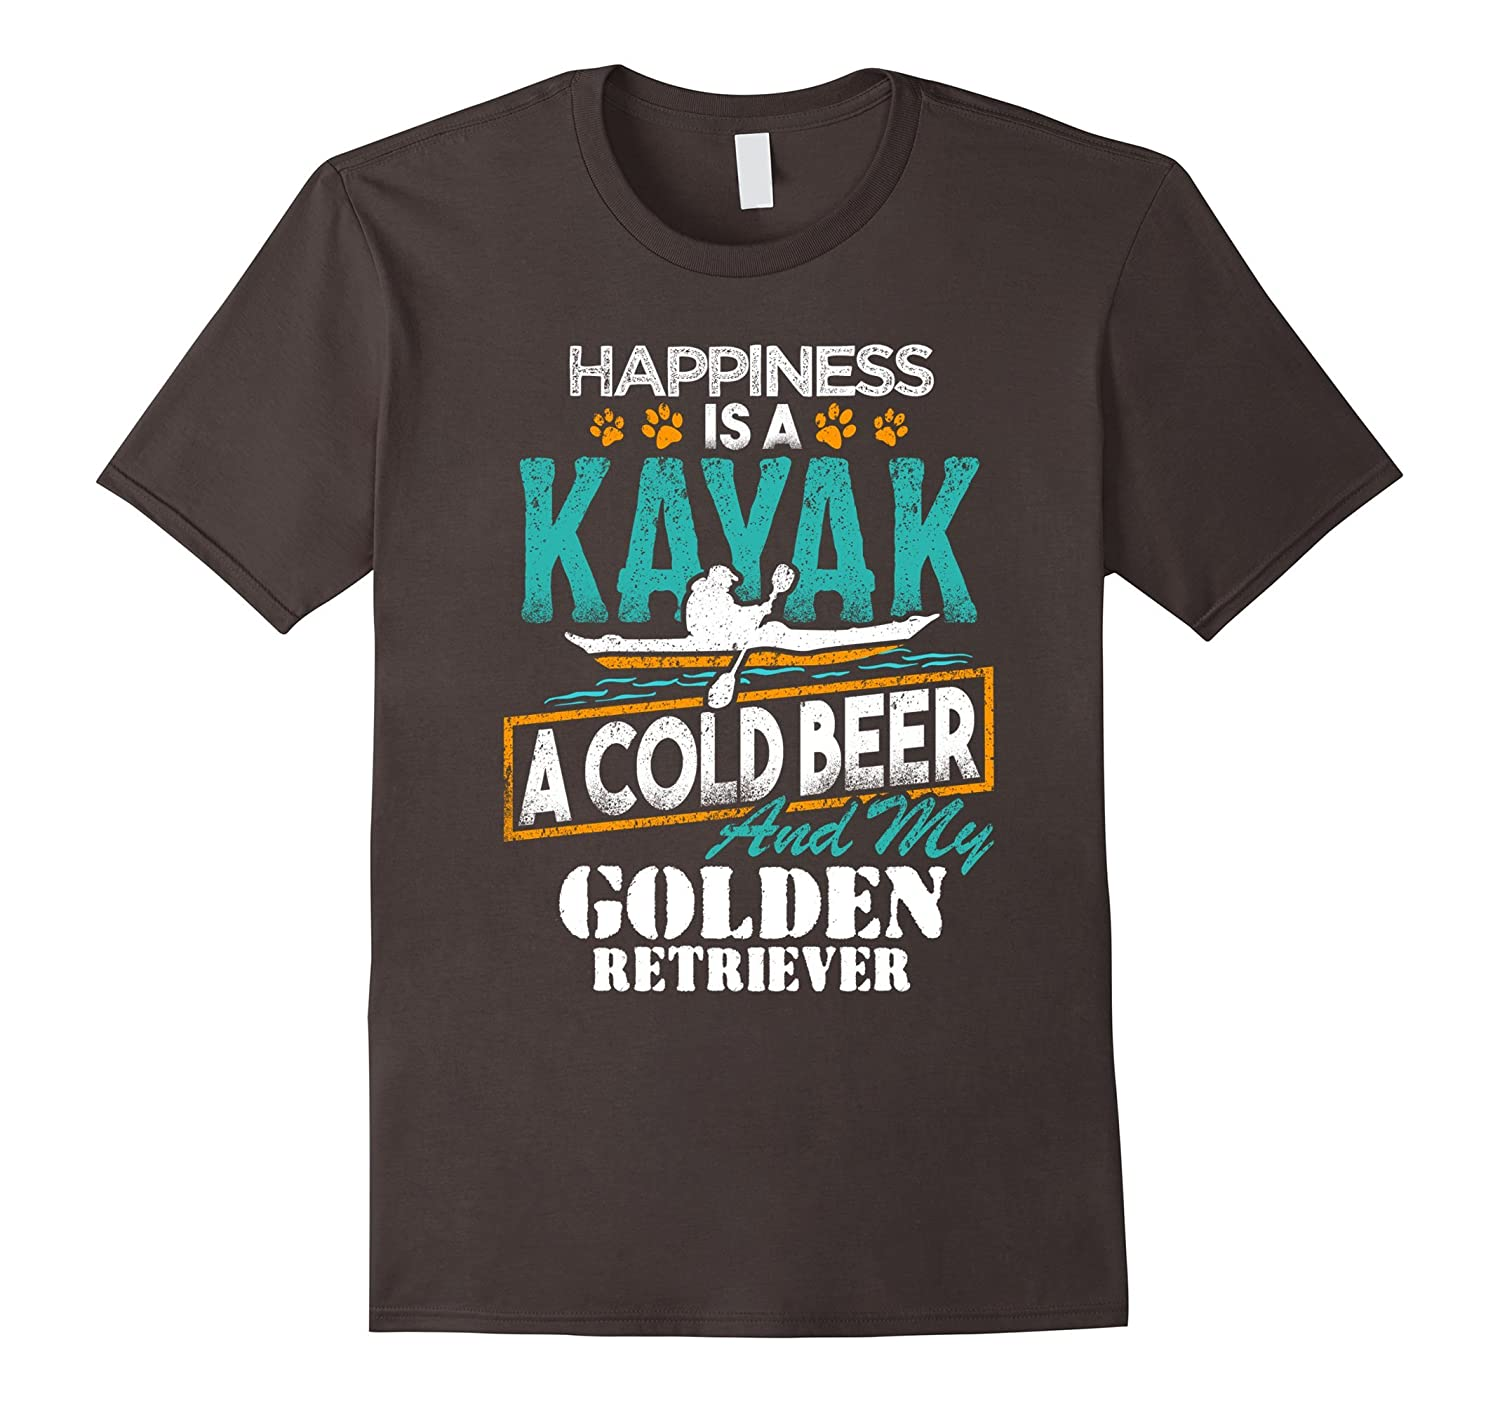 Happiness is a Kayak Cold Beer My Golden Retriever T-Shirt